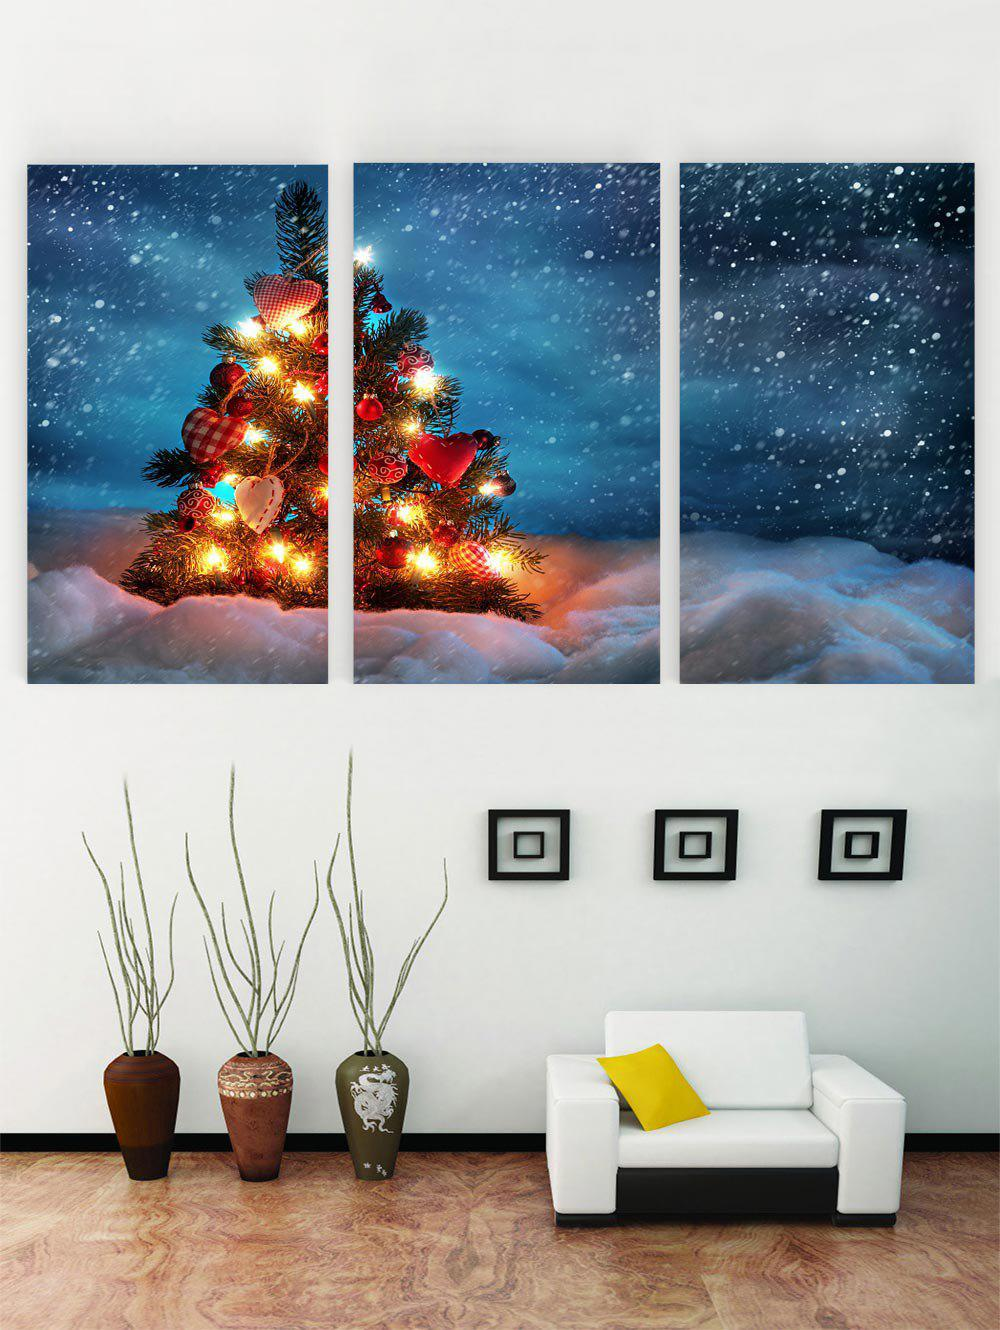 Sale Unframed Christmas Tree Print Canvas Paintings